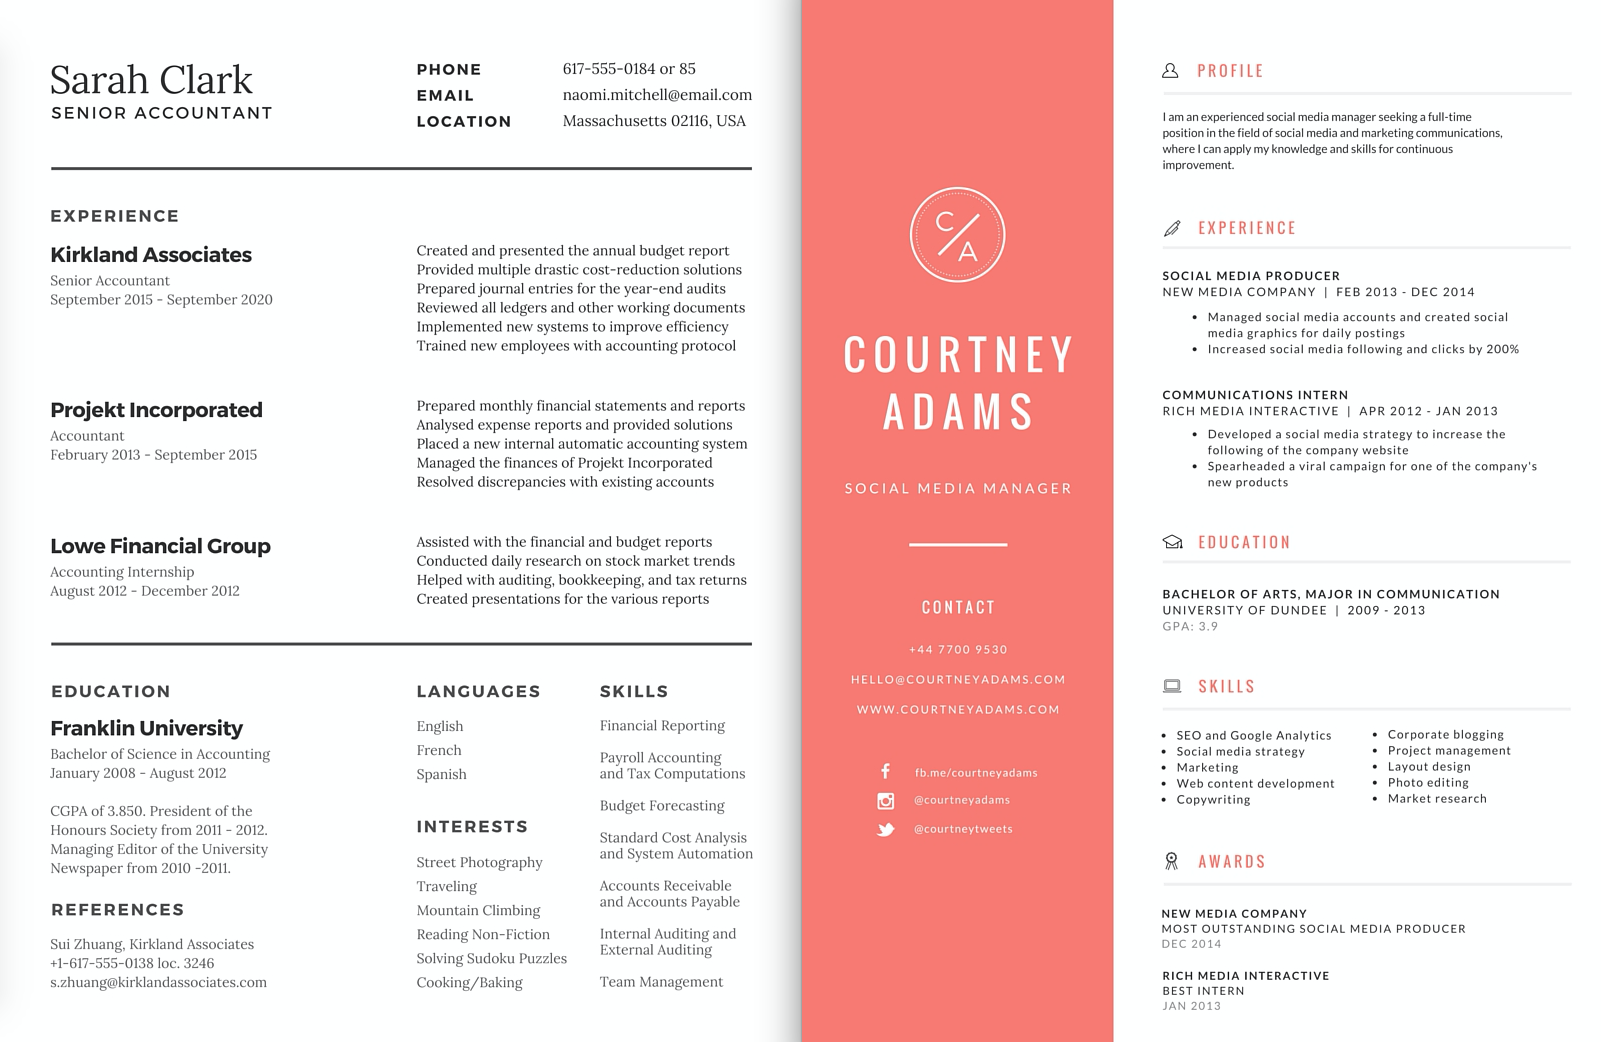 Redesigning Your Resume for 2016